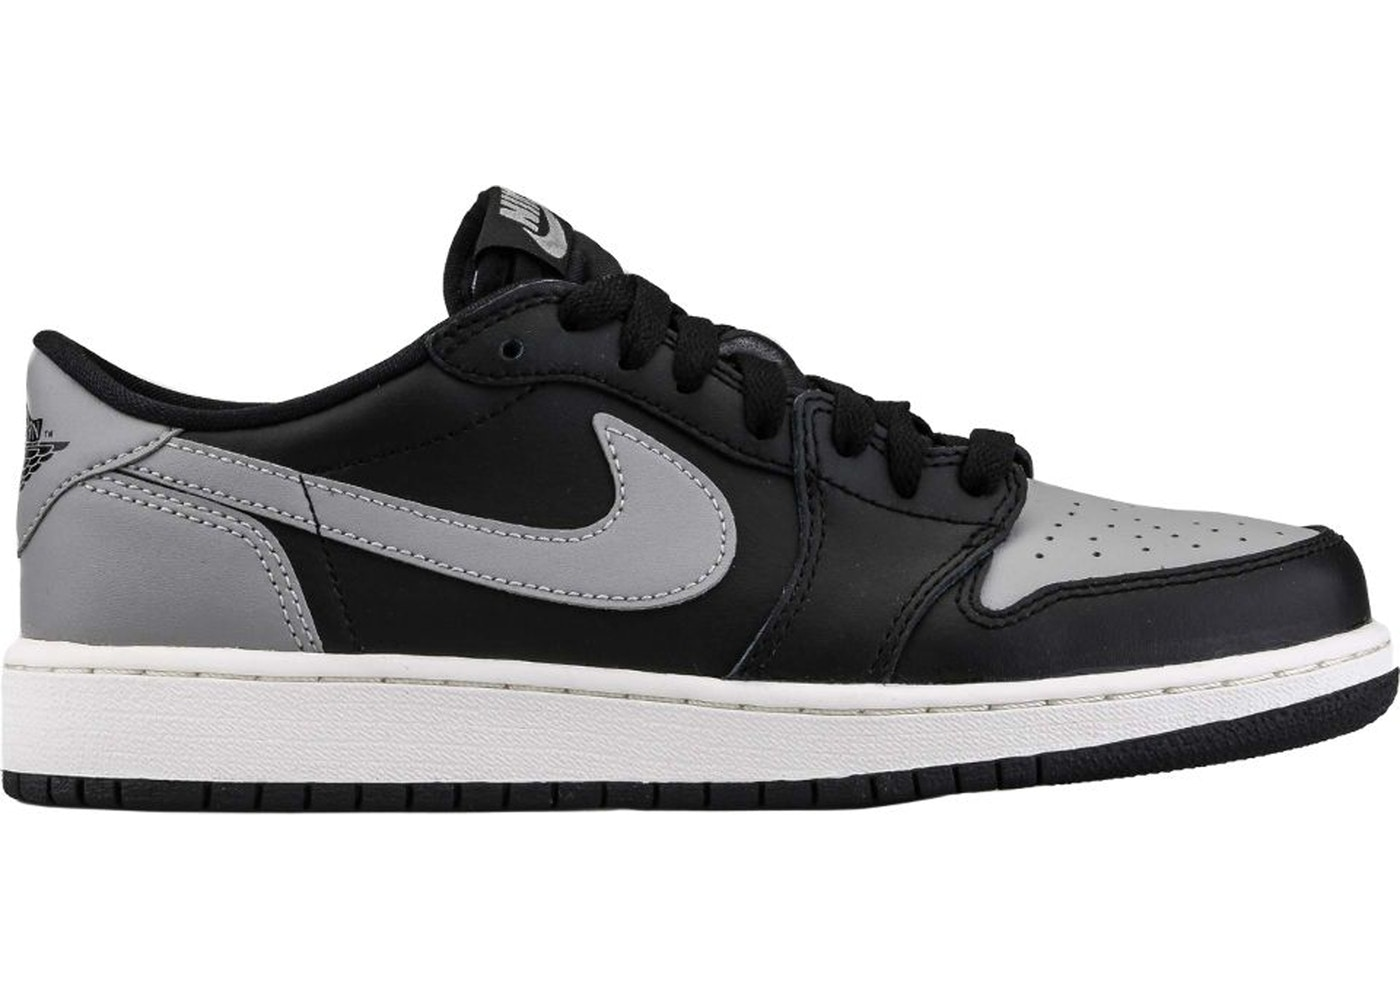 fcc94c2f72e0 Jordan 1 Retro Low Shadow (GS) - 709999-003